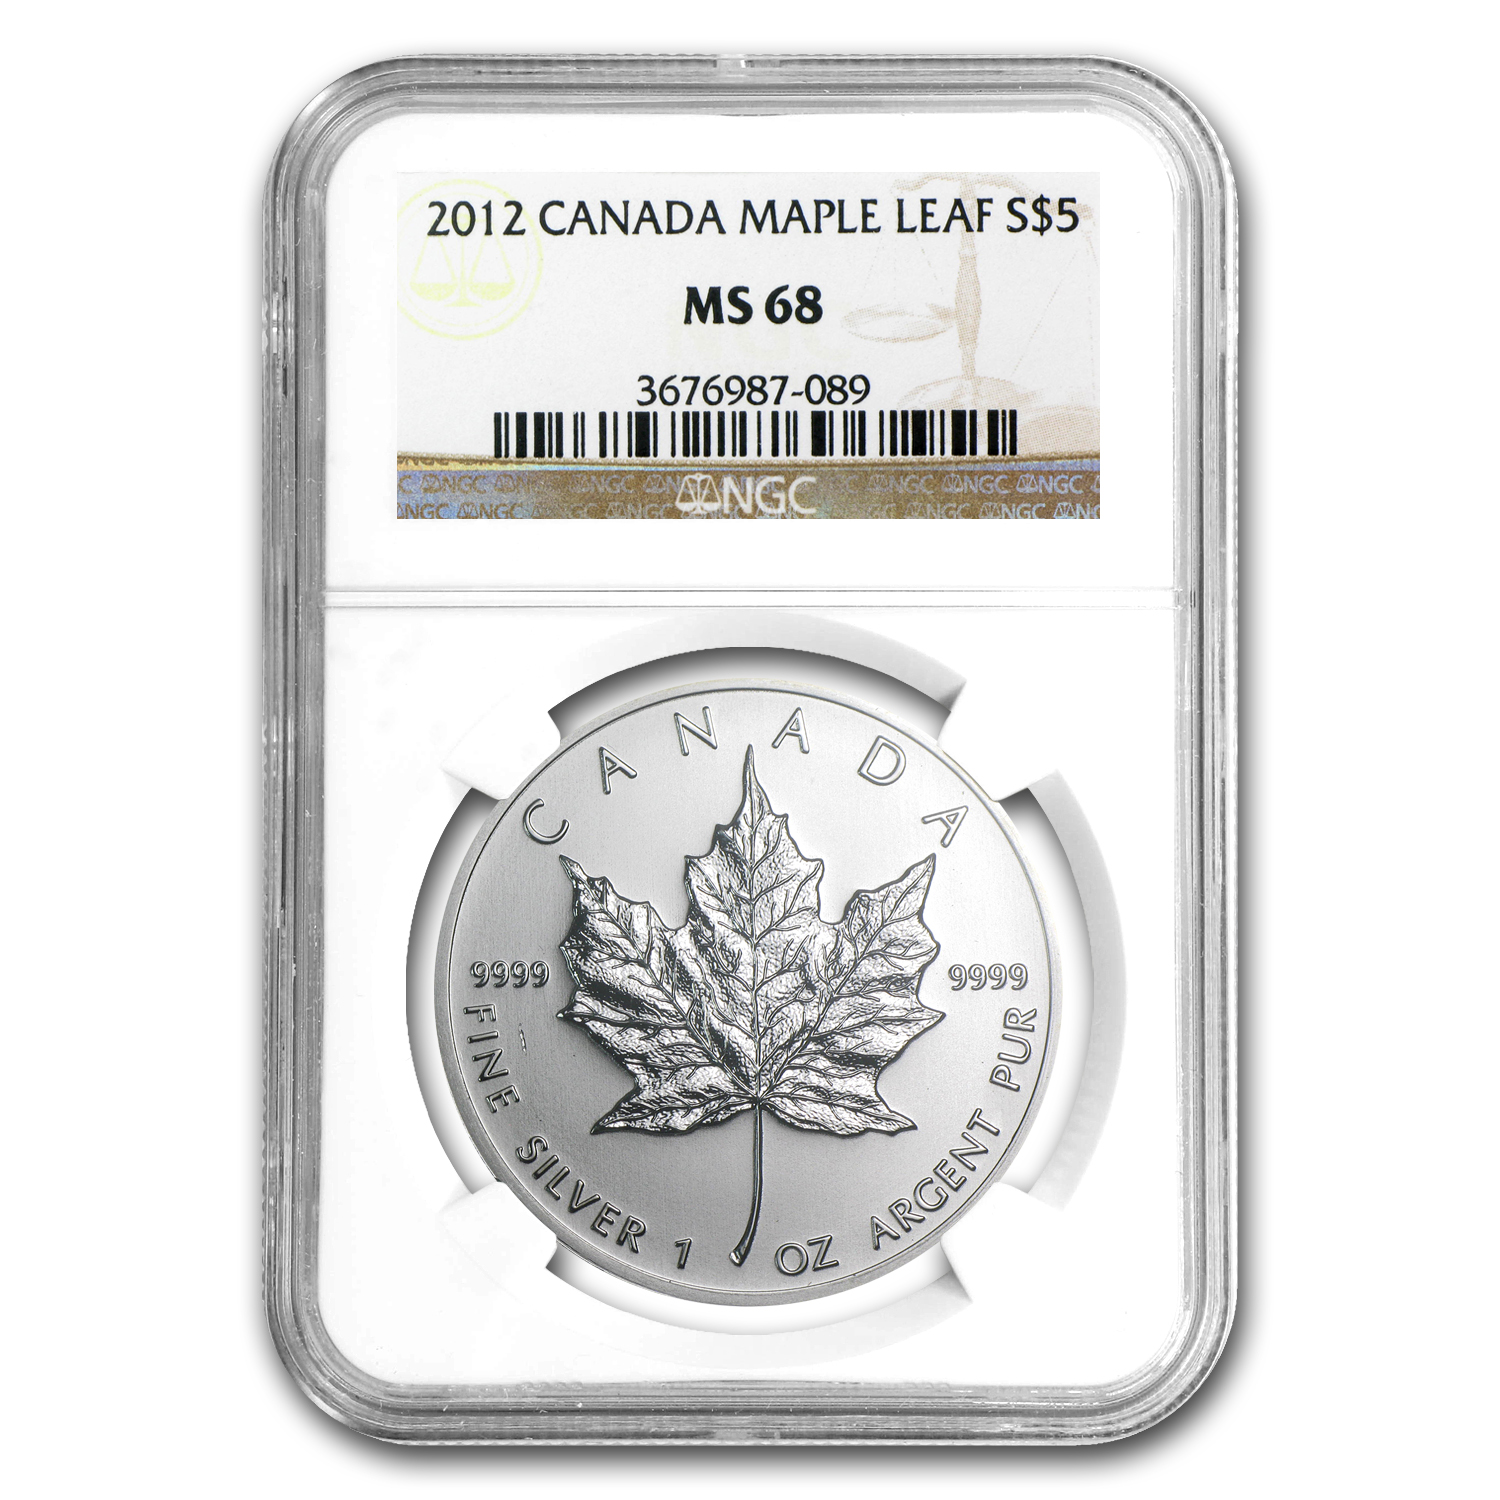 2012 Canada 1 oz Silver Maple Leaf MS-68 NGC